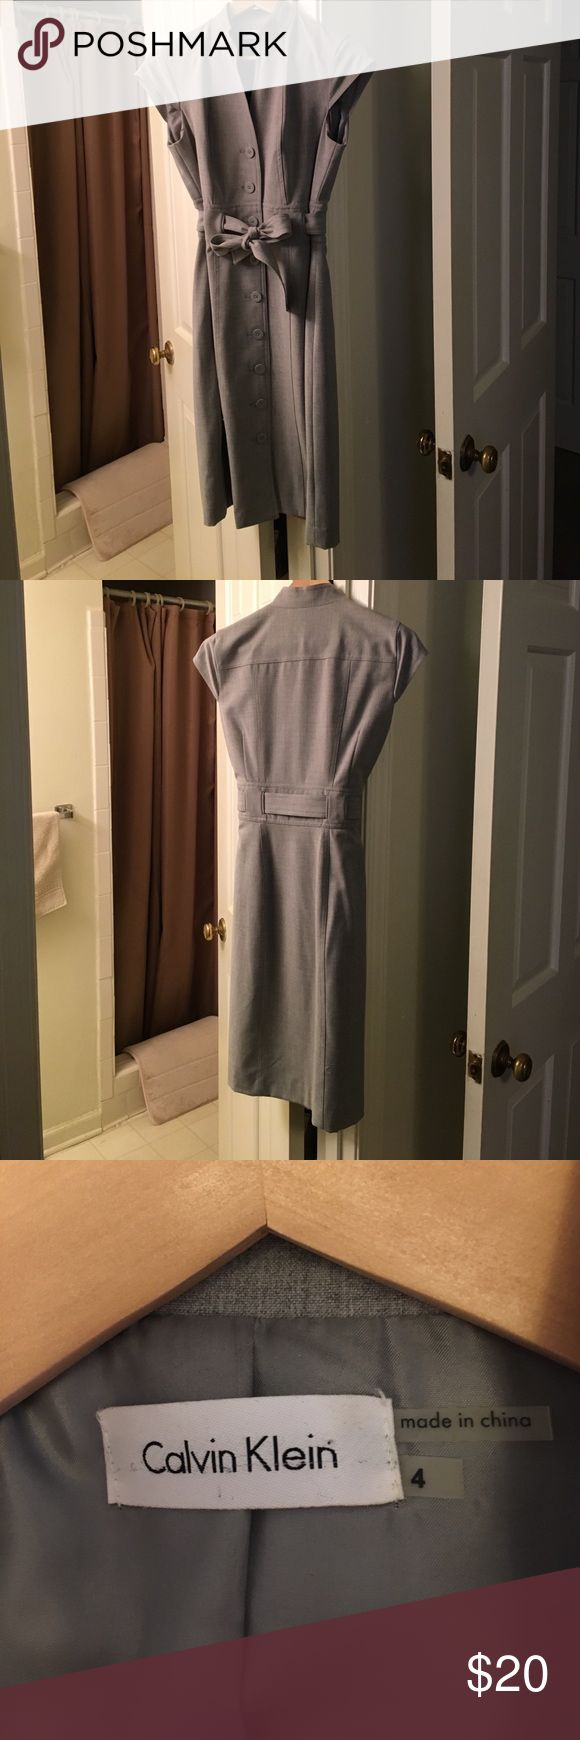 Calvin Klein Dress This is a professional gray dress that hits at the knee. It wraps at the waist to give your figure definition. Looks great with black pumps or kitten heels. Calvin Klein Dresses